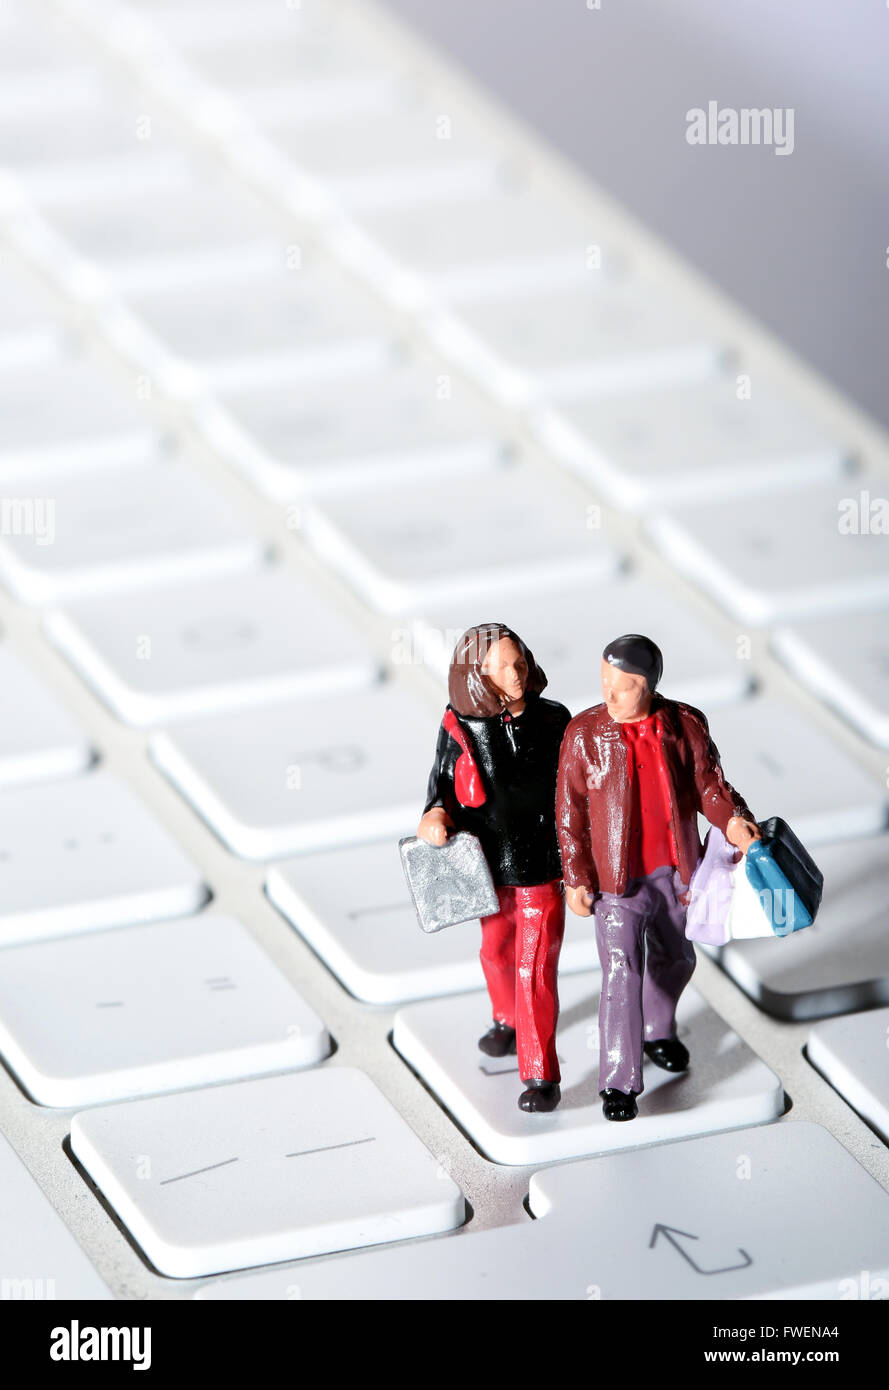 Online Shopping concept de droit d'un couple sur un clavier d'ordinateur carrying shopping bags Photo Stock